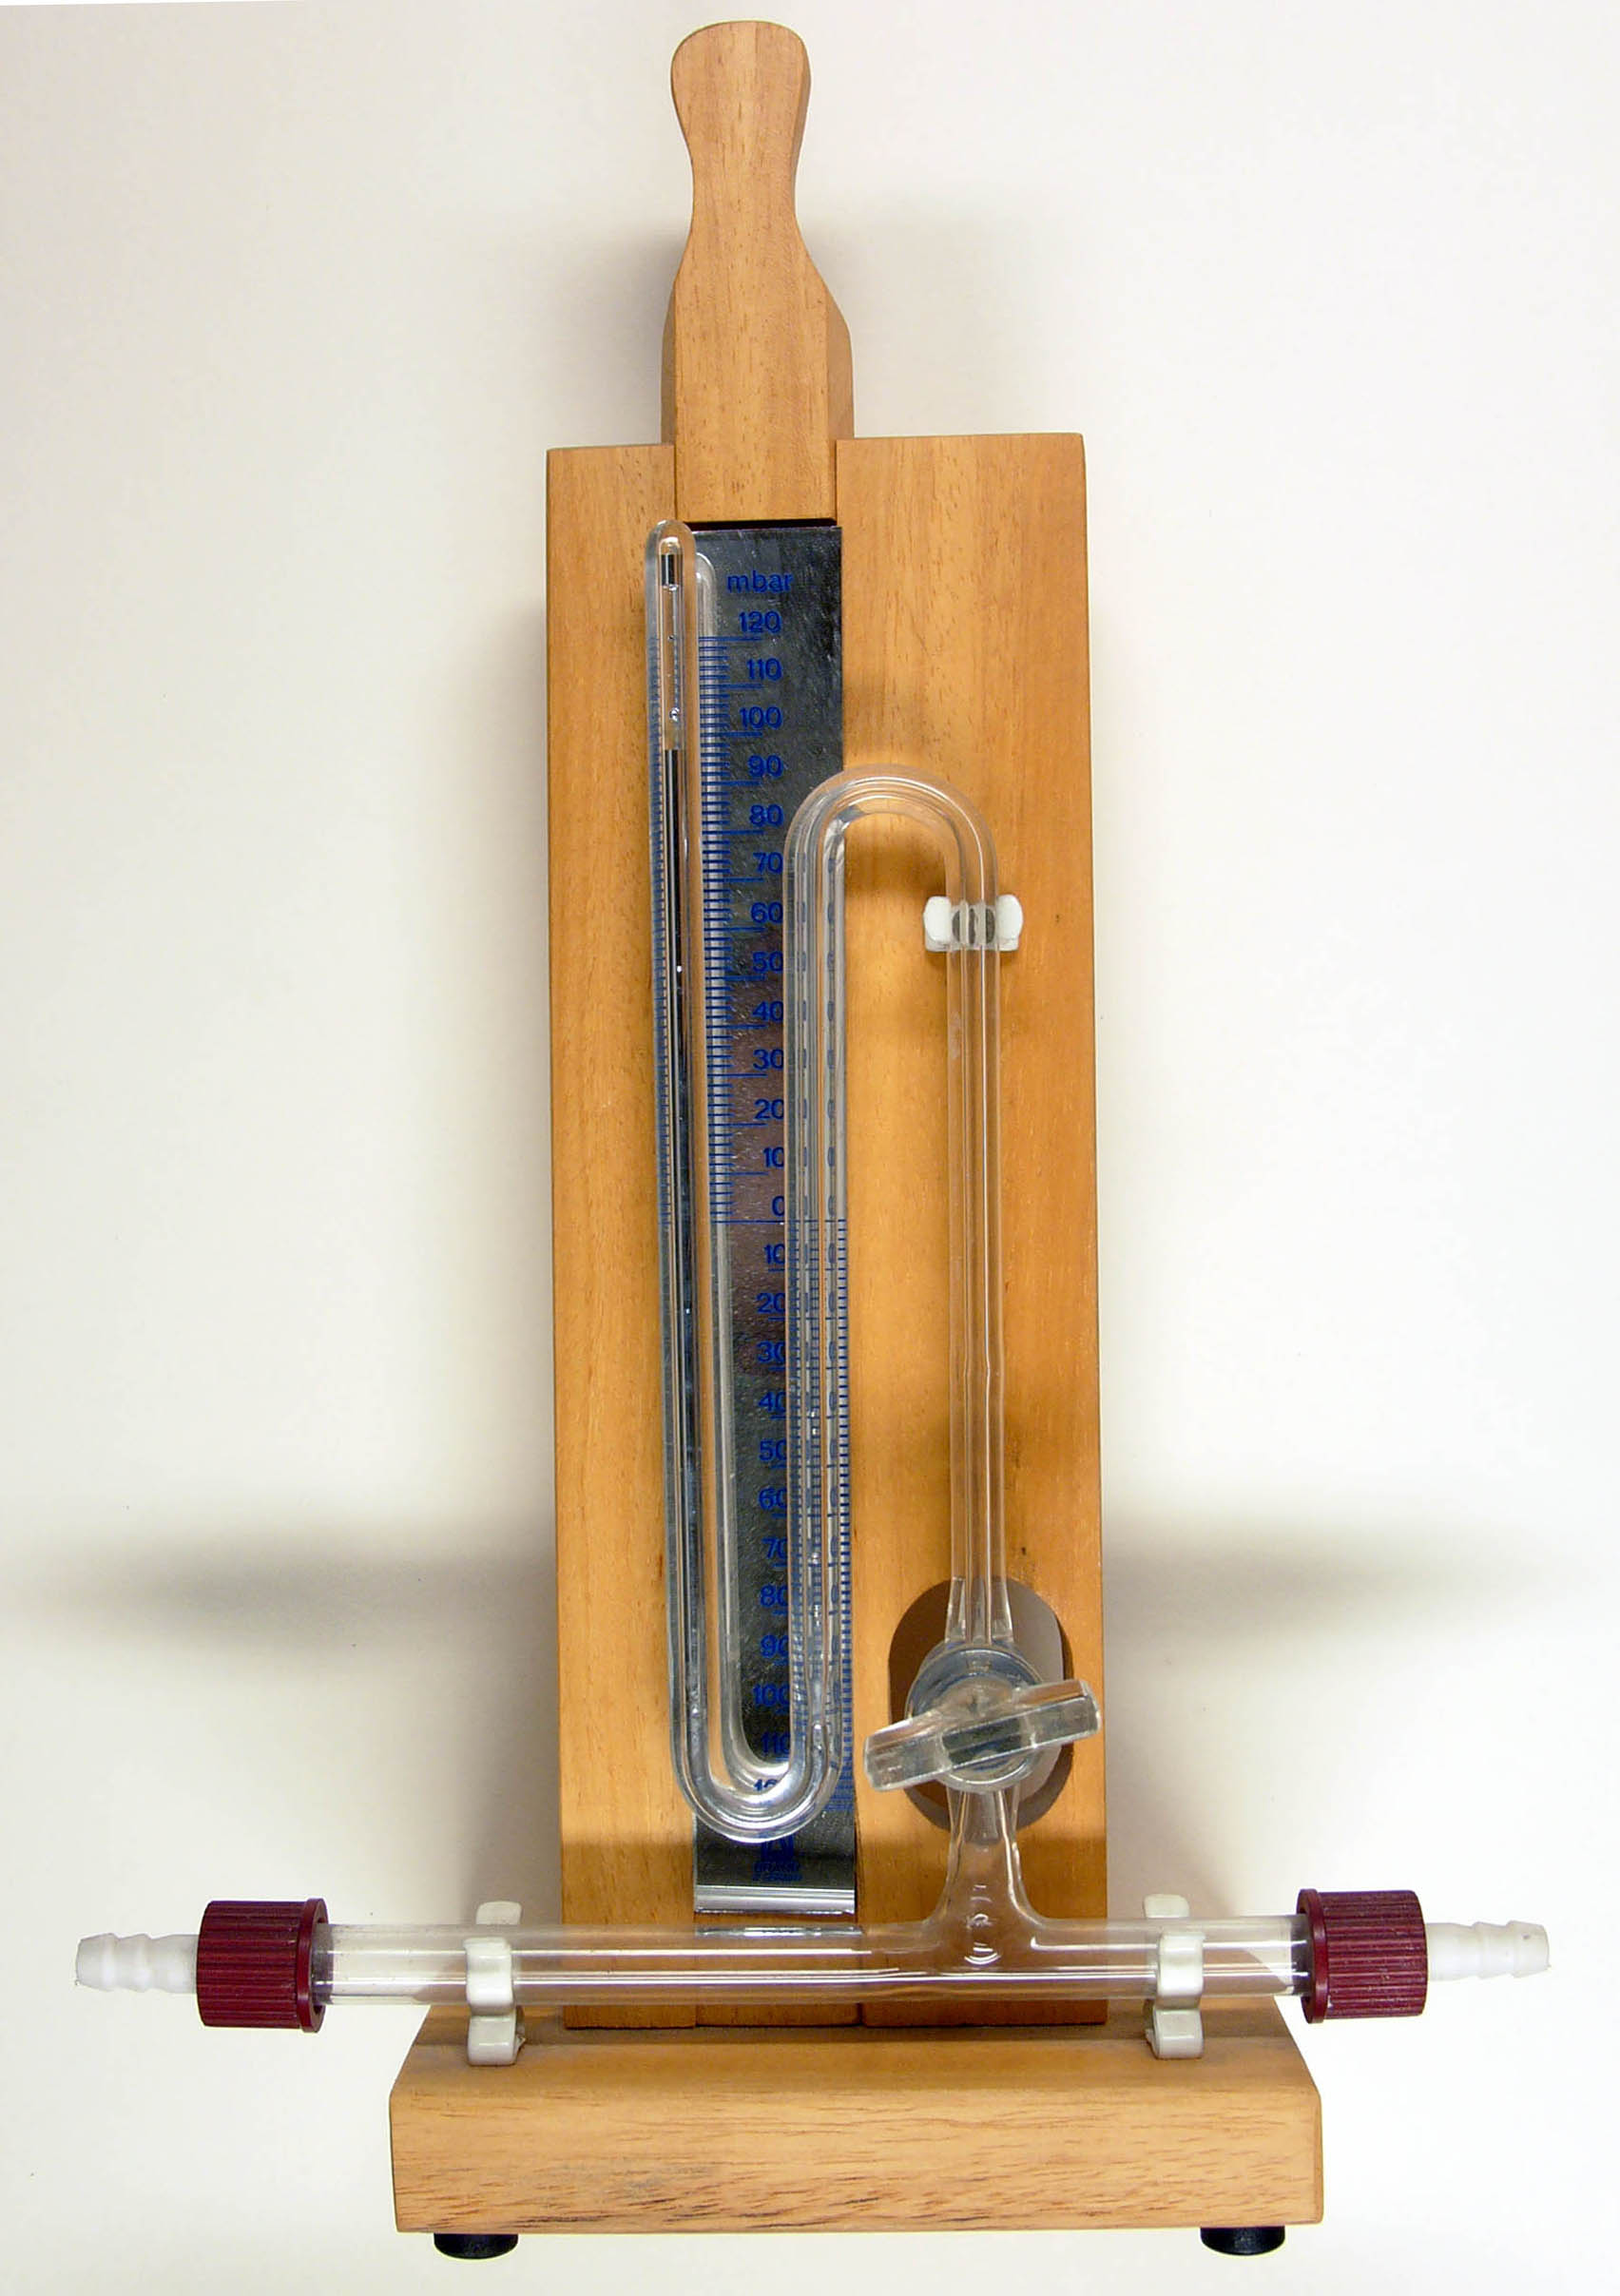 Gas Law Theory Gary Garbers Blog How To Build Electronic Torricelli Barometer As Mentioned Before Galileo Made A Crude Using Vacuum Pump From Leather Bag And Water The Fluid Student Of Galileos